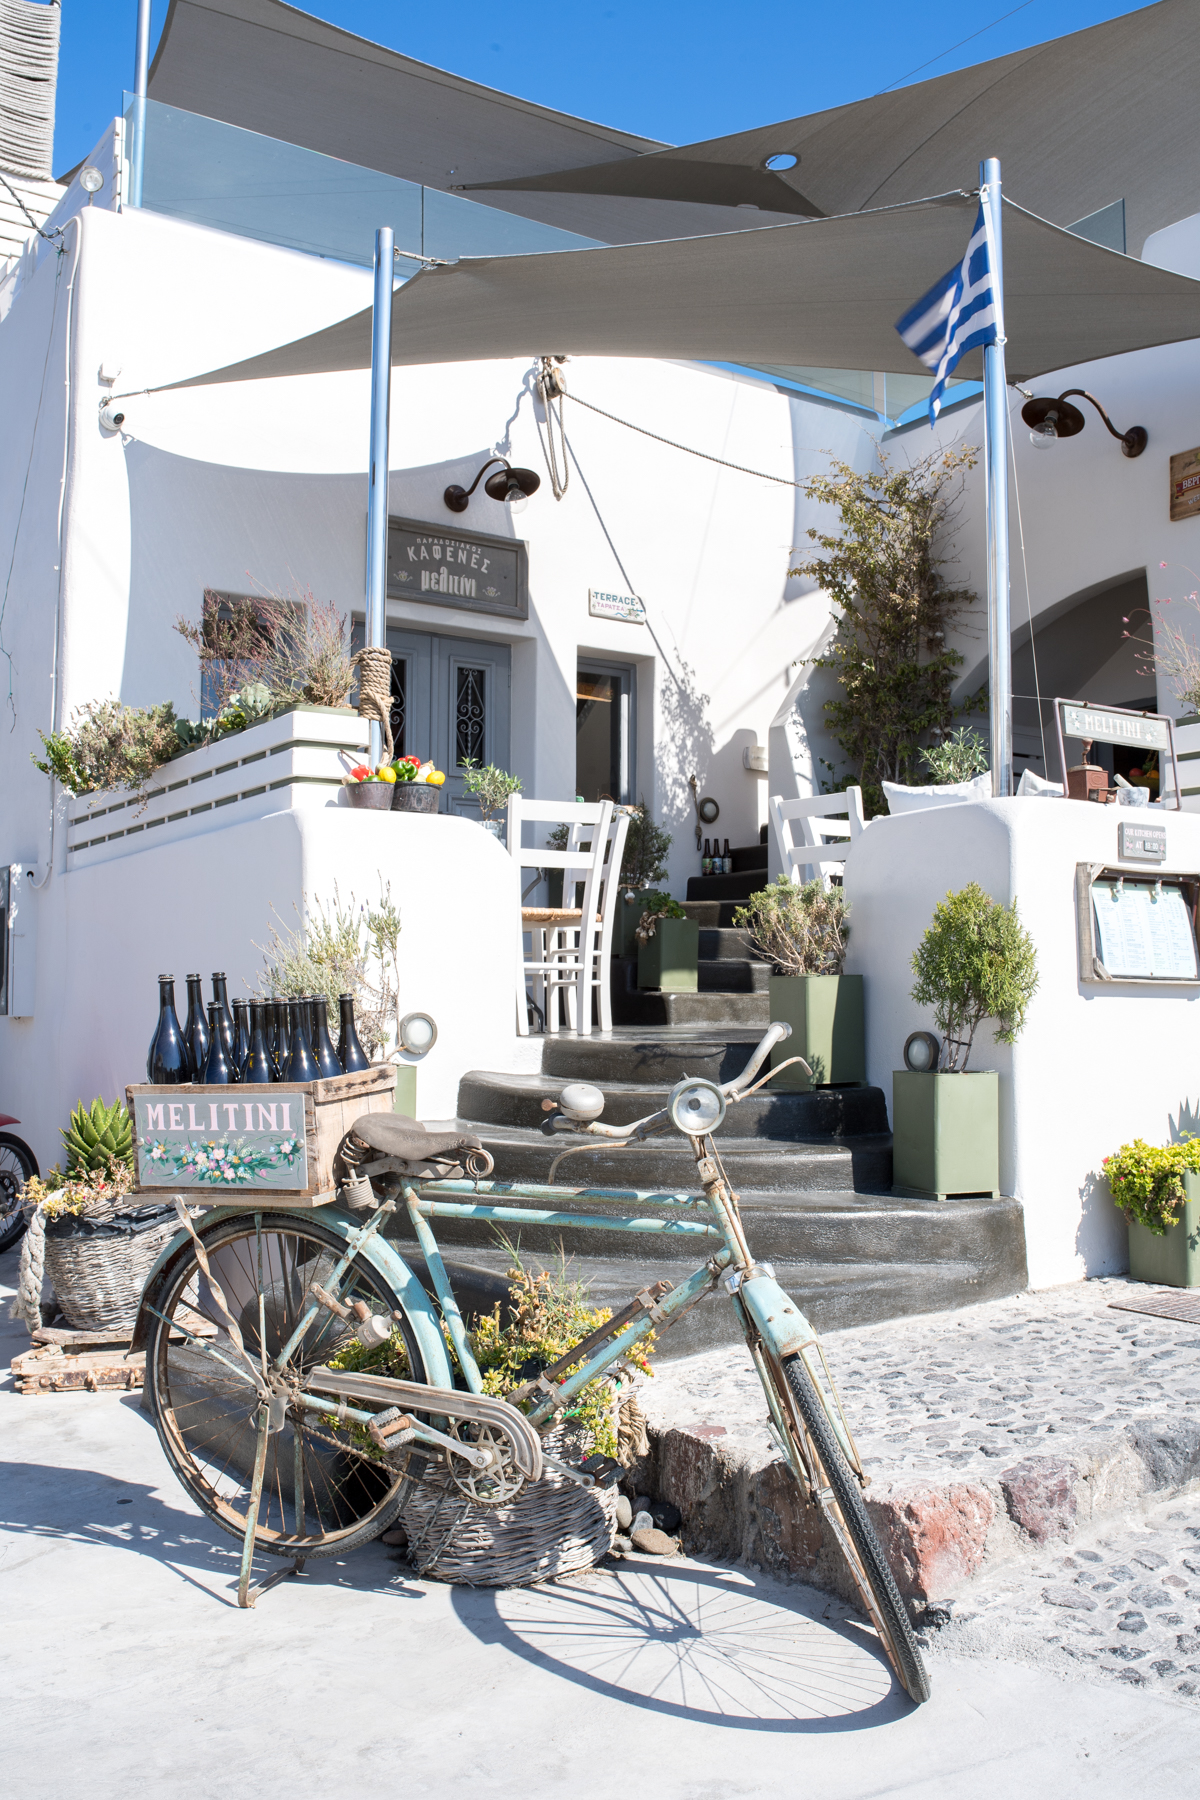 Stacie Flinner Travel Guide Santorini Greece-40.jpg